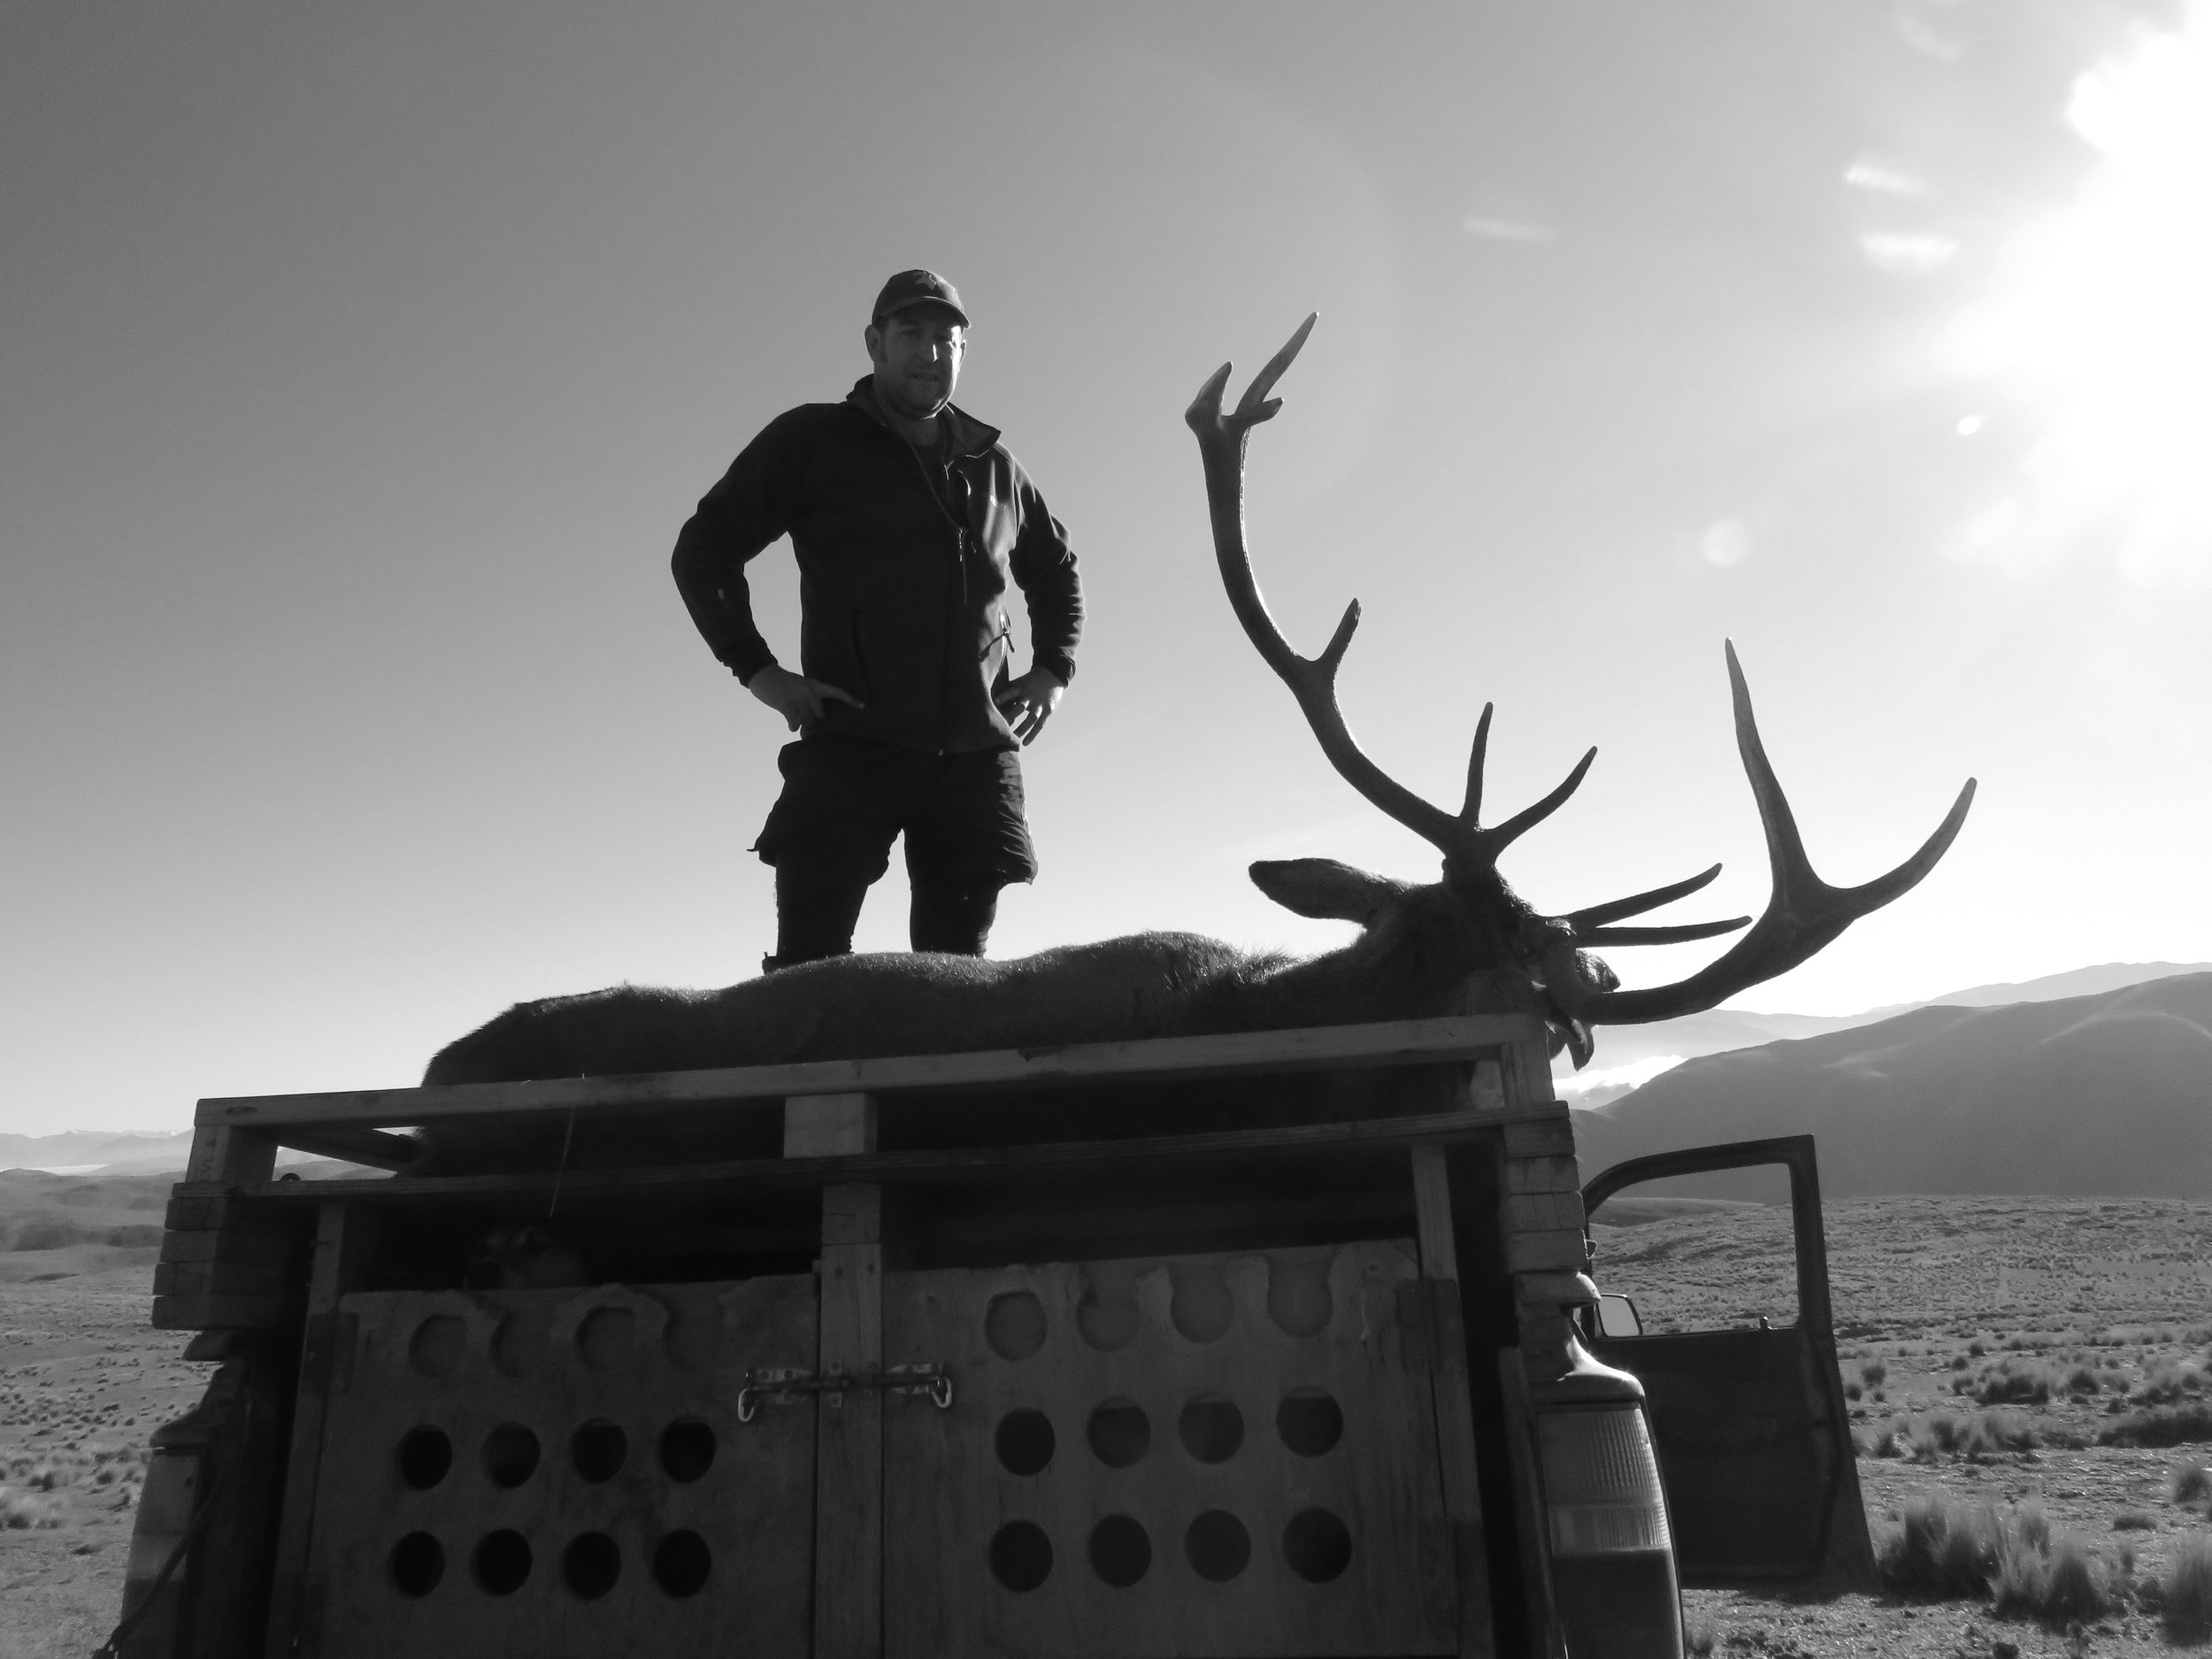 Sparky's whole stag loaded onto the back of the Hilux.